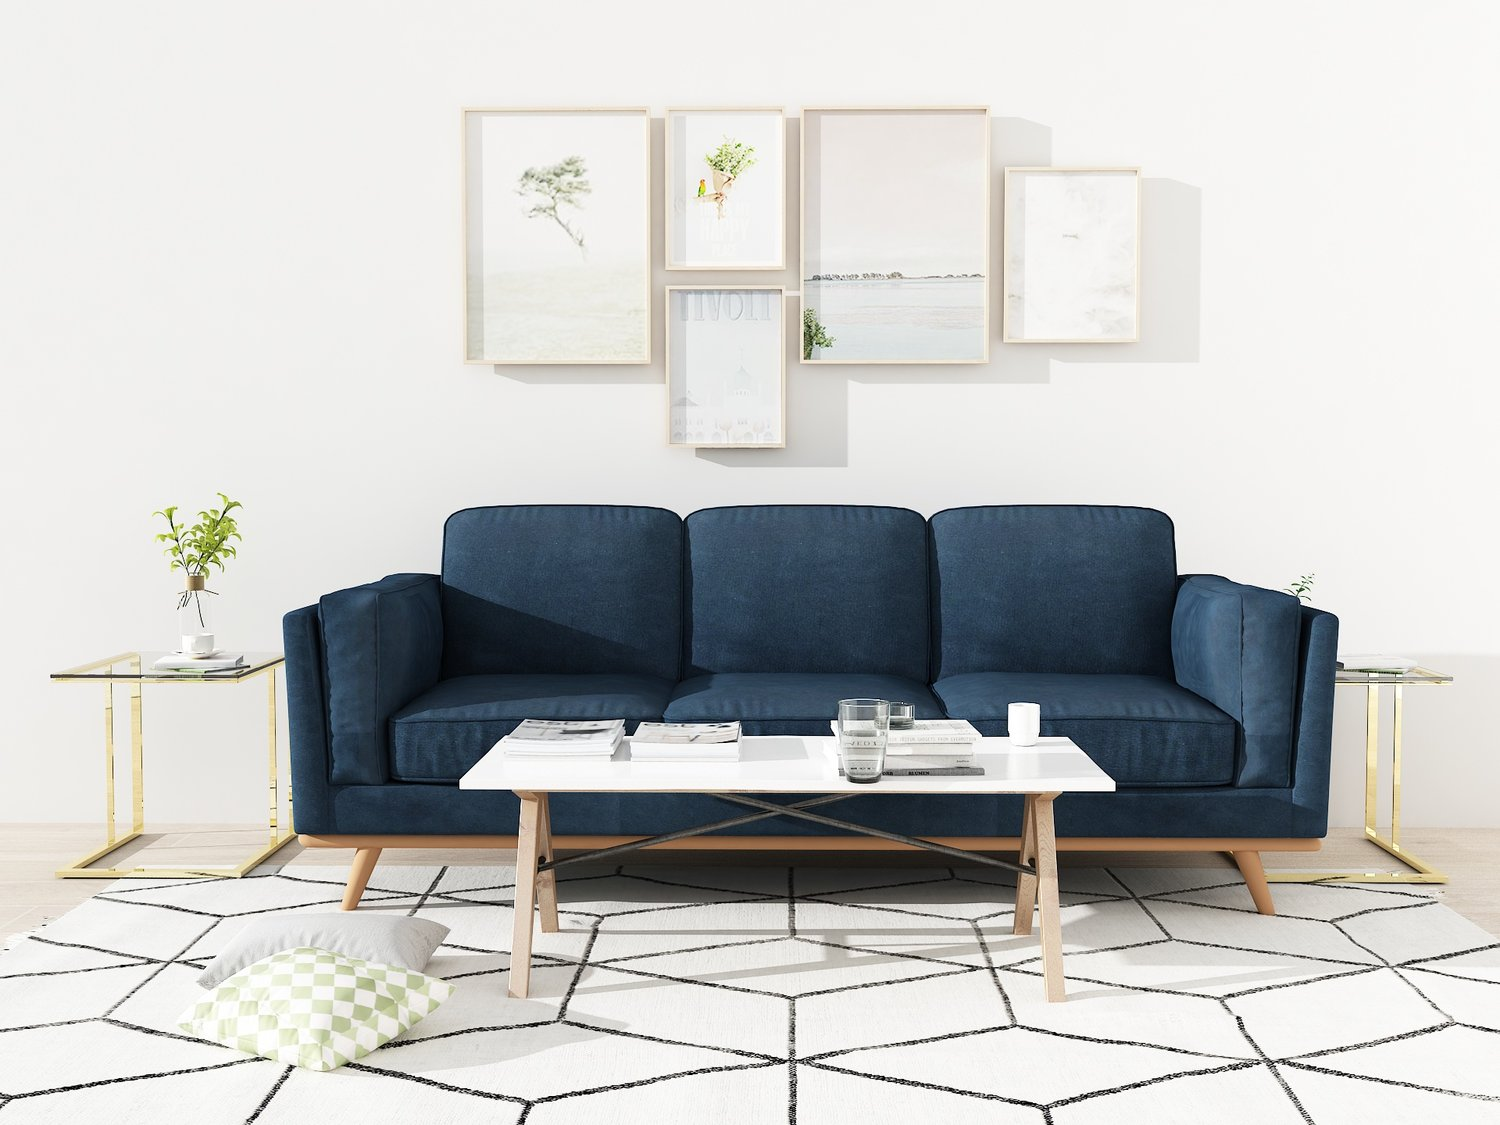 Queenshome Furnitures House Home New Style Design Muebles Minotti Living Room Flannel Fabric Recliner 3 Seater Couch Sofas Queens Home